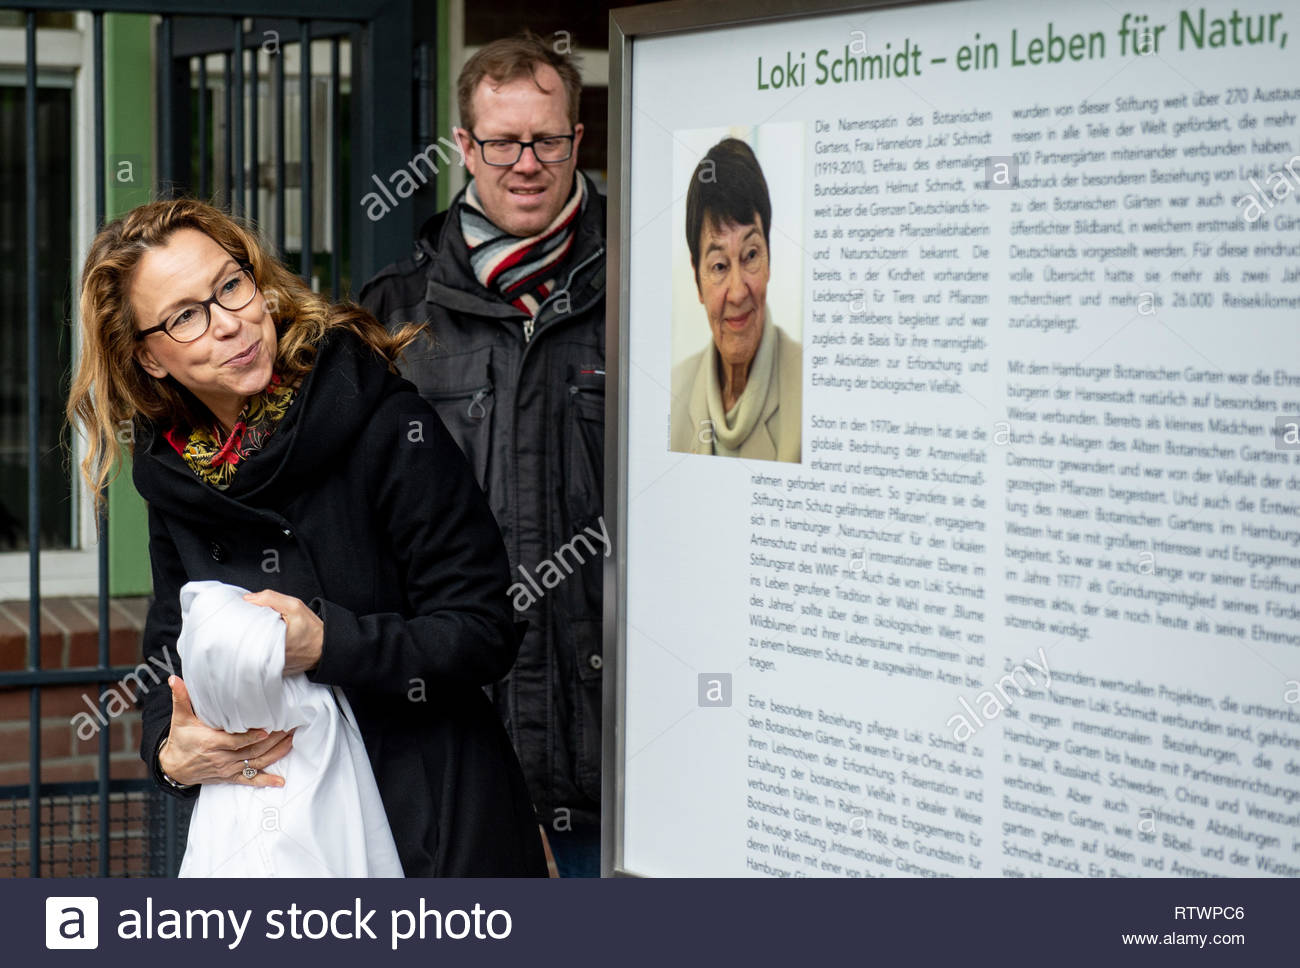 hamburg germany 03rd mar 2019 carola veit spd president of the hamburg parliament unveils a memorative plaque in honour of hamburgs honorary citizen loki schmidt who d in 2010 in the botanical garden a birthday matinee was held to memorate the life of schmidt as a conservationist who would have turned 100 on 03 march 2019 credit axel heimkendpaalamy live news RTWPC6